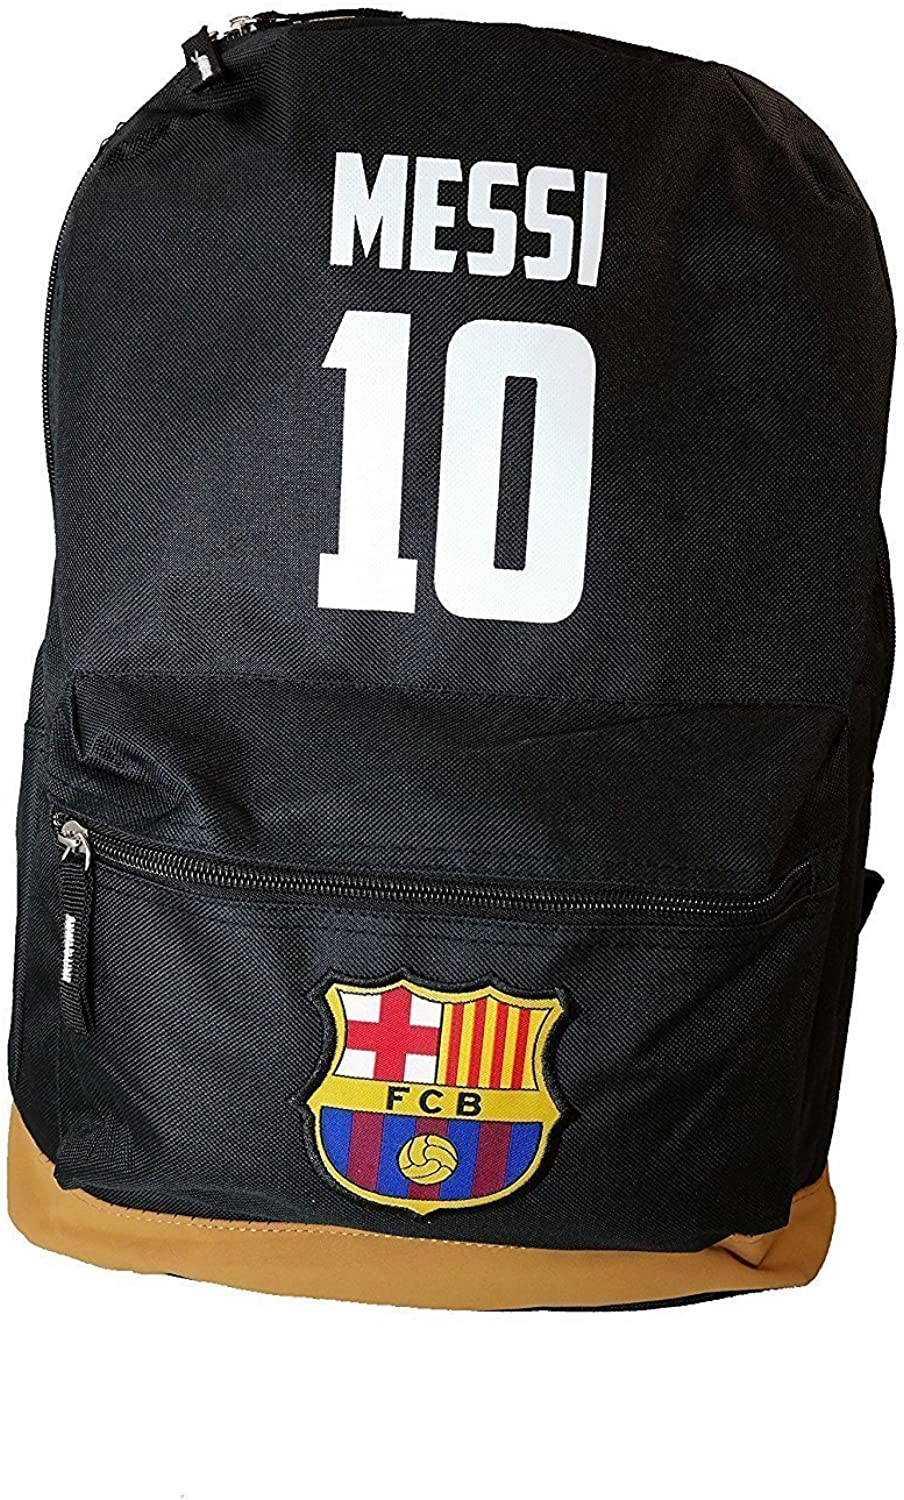 FC Barcelona Authentic Price reduction Official Product Soccer New Shipping Free Shipping Licensed Backpack